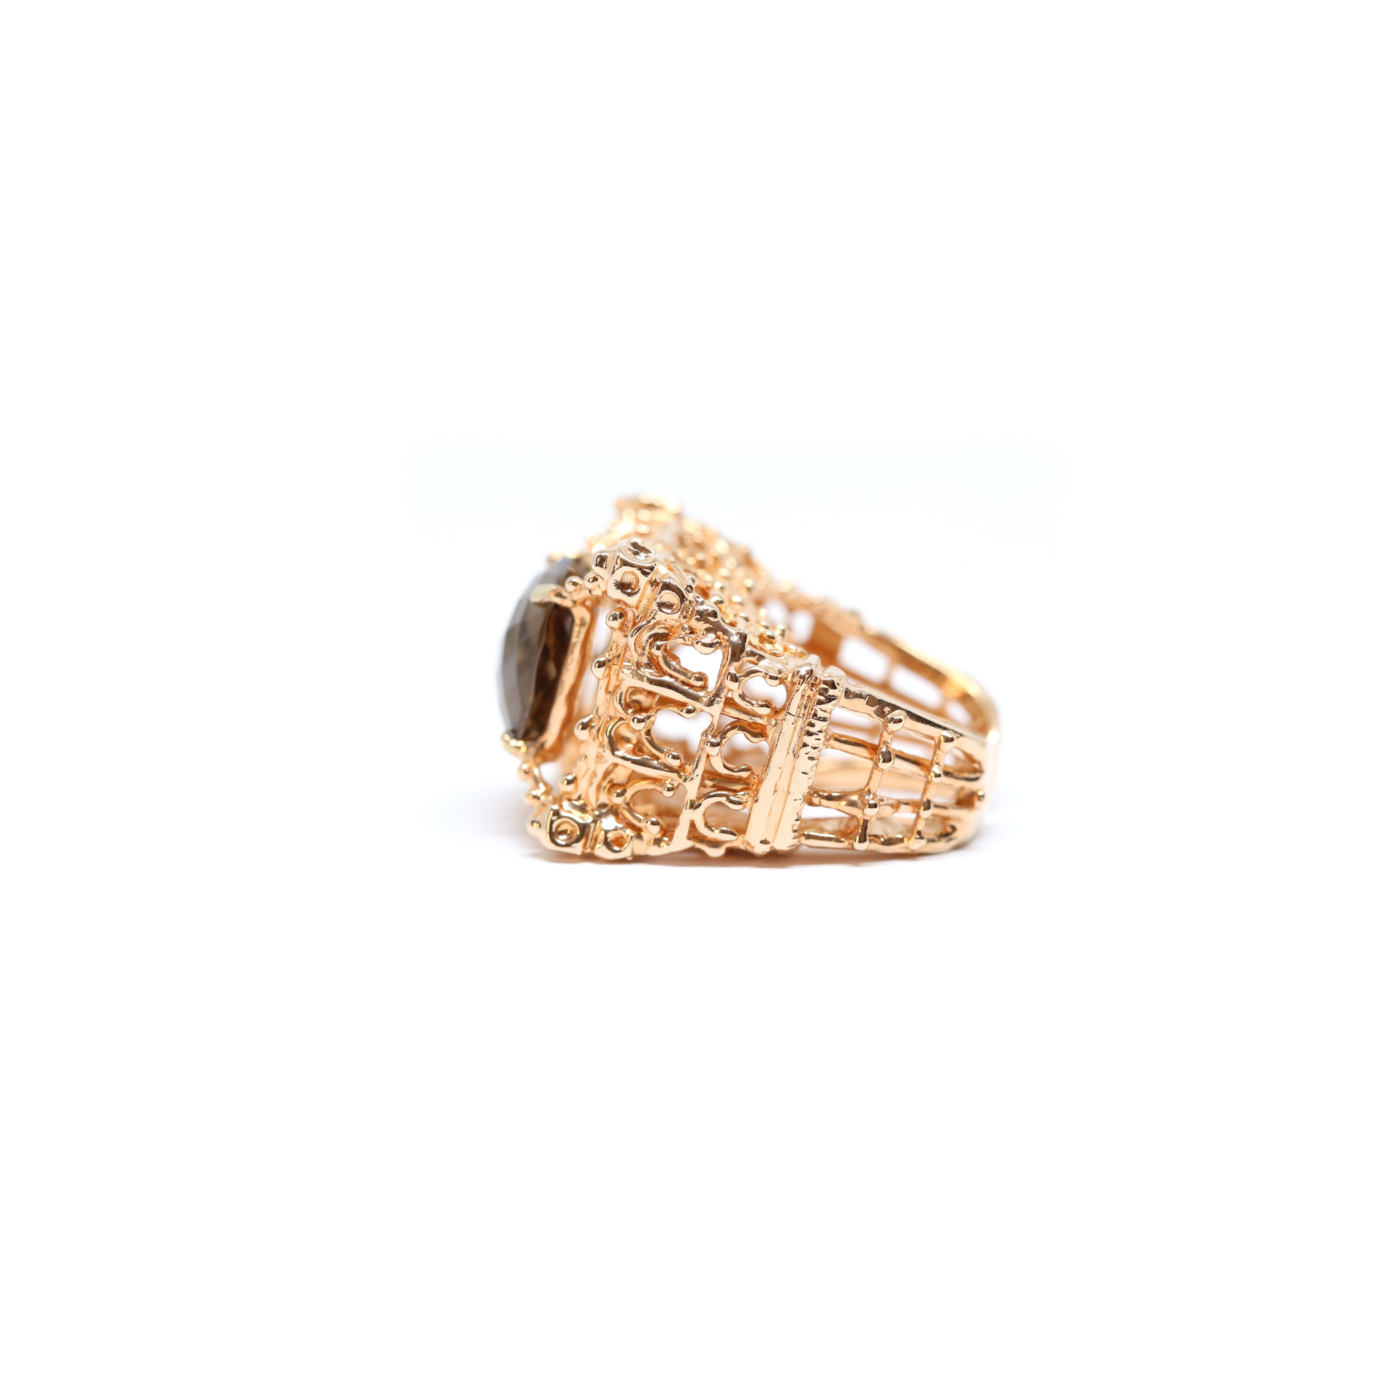 Notre Dame Ring Rose Gold Plated Bronze with Hydrothermal Smoky Quartz